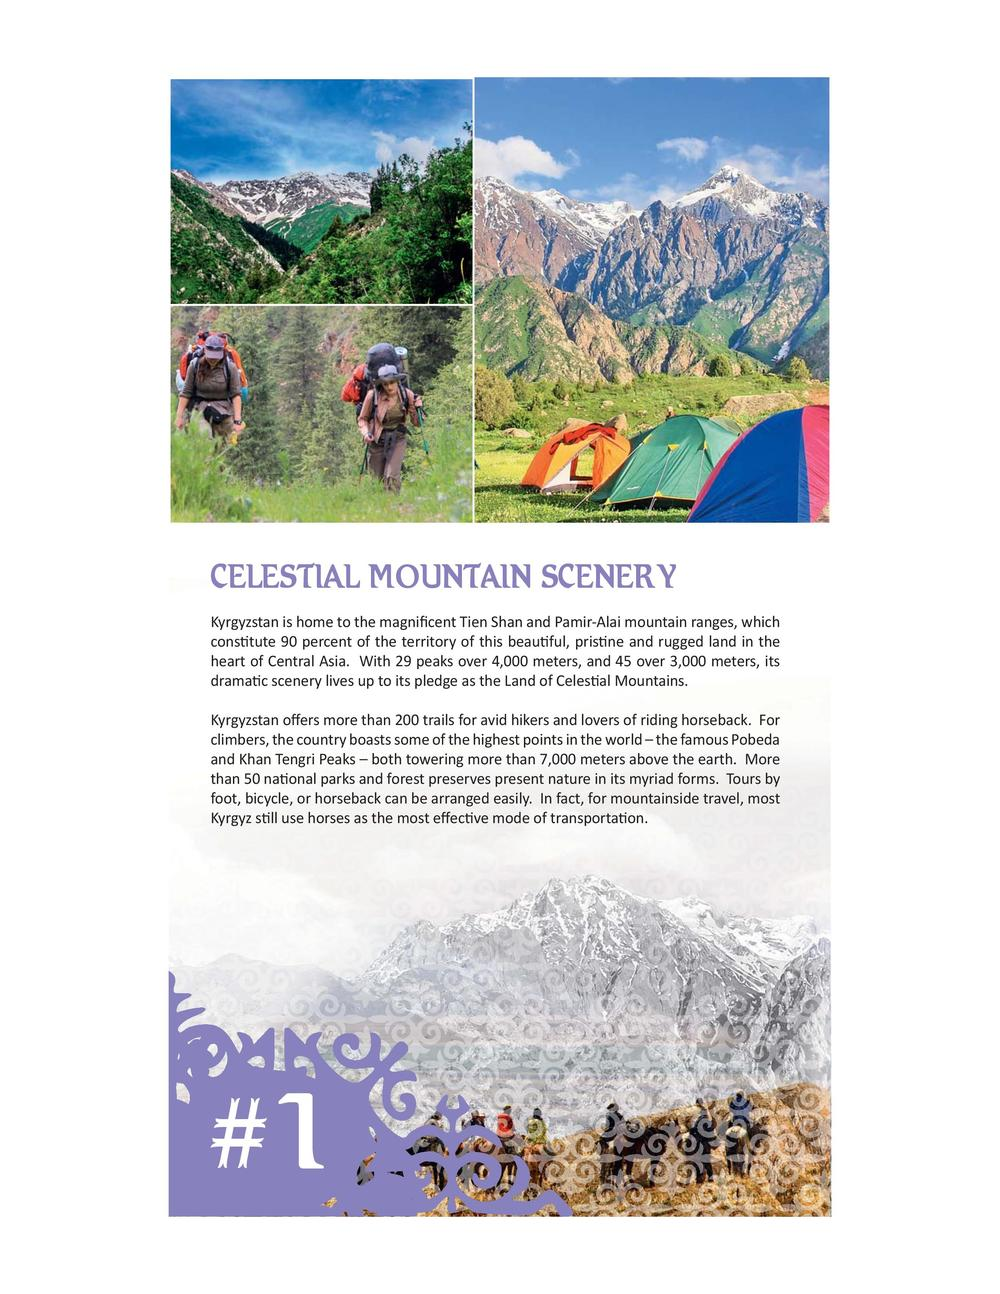 10 reasons to explore Kyrgyzstan_SMALL-page-002.jpg